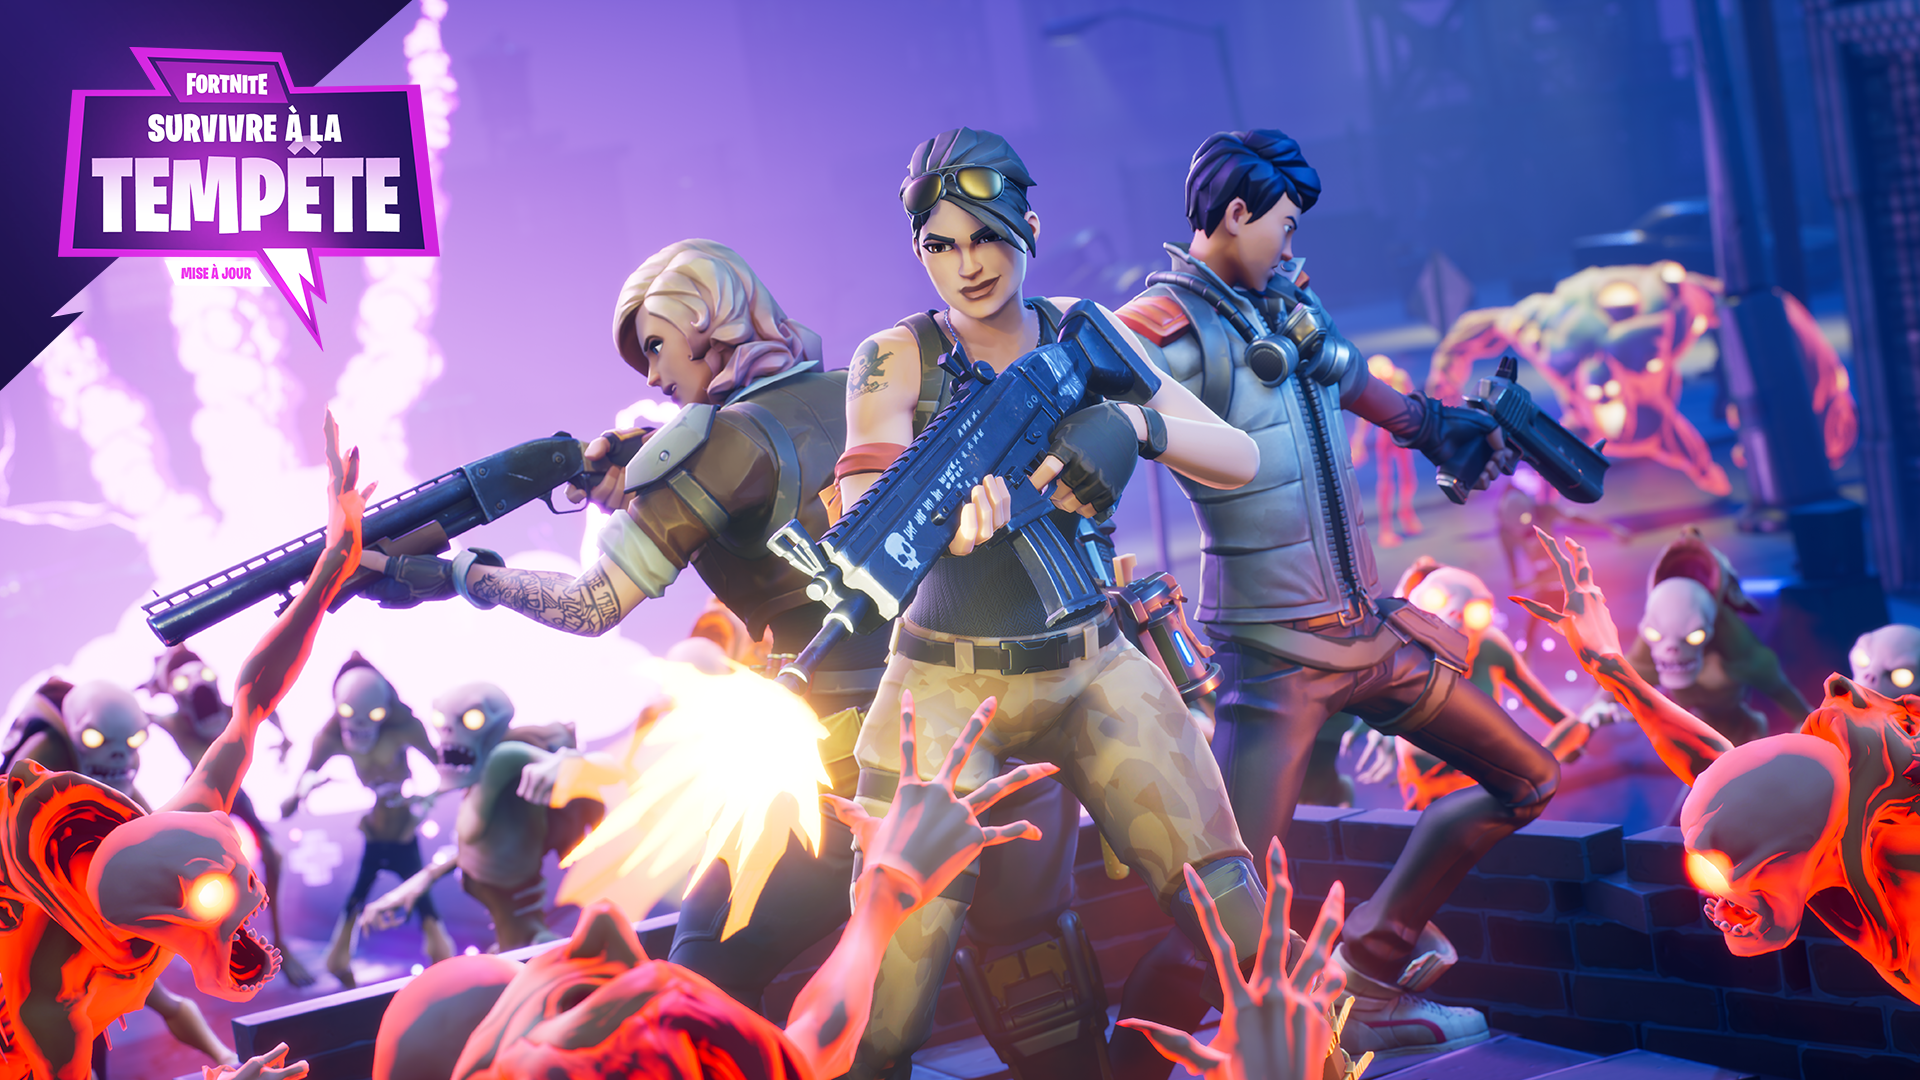 Fortnite%2Fblog%2Fsurvive-the-storm---release-notes%2FFR_Storm-Zone-1920x1080-67c2dd4c3cbef0794a574b80bdb0c8582d4f79cd